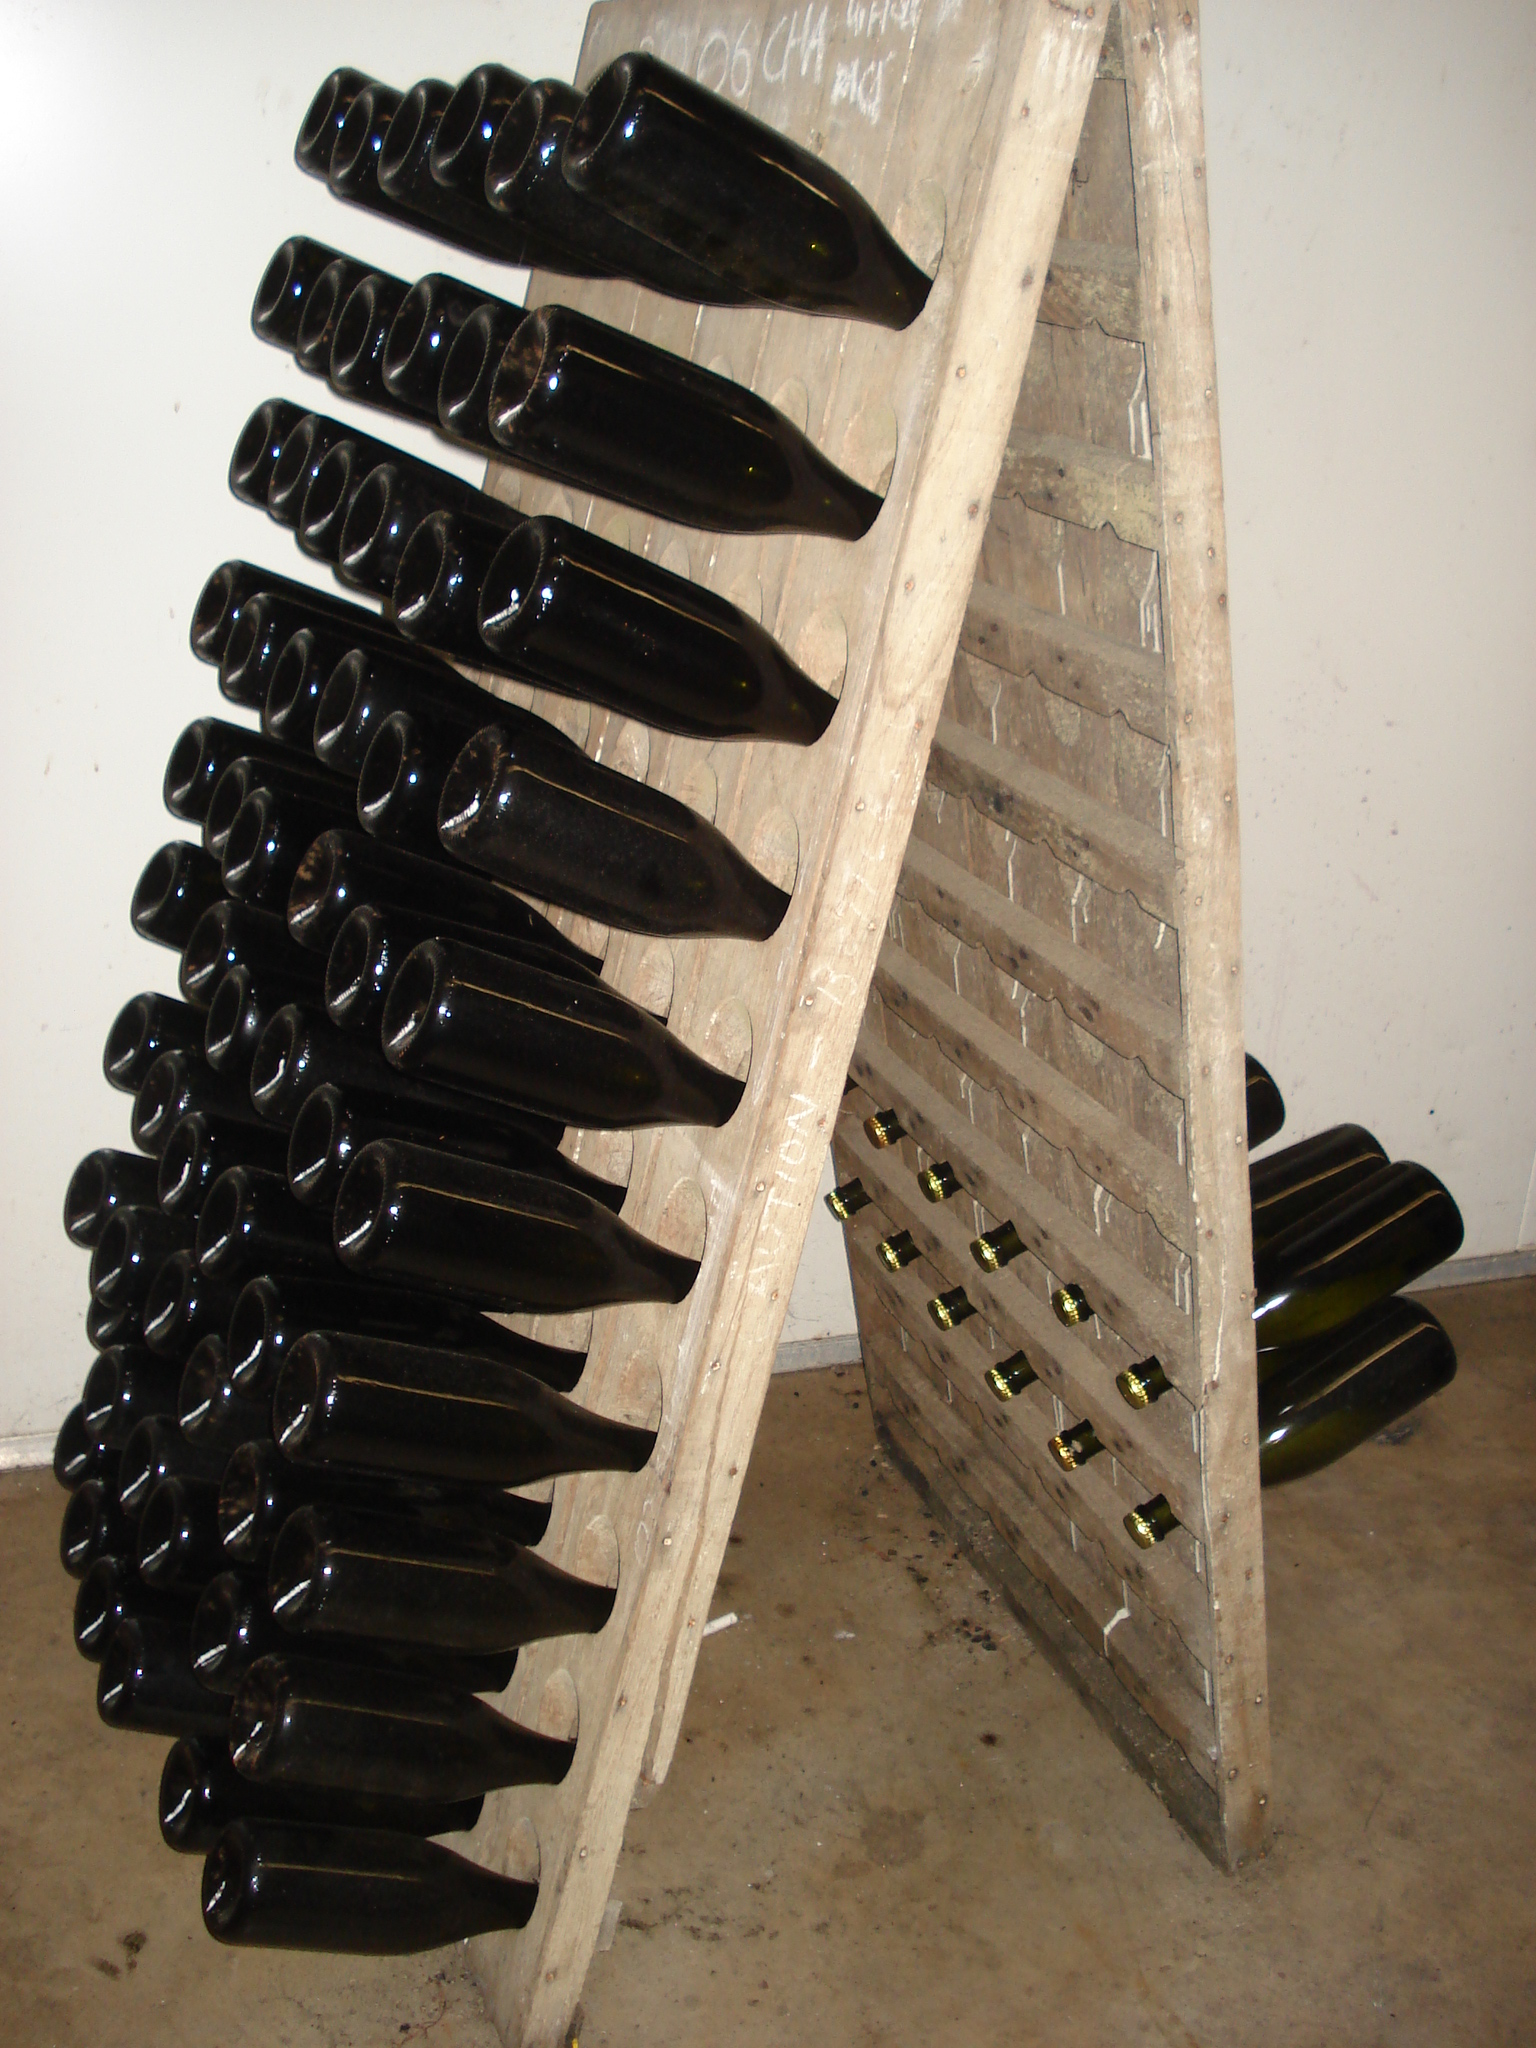 100 bottle wine rack plans